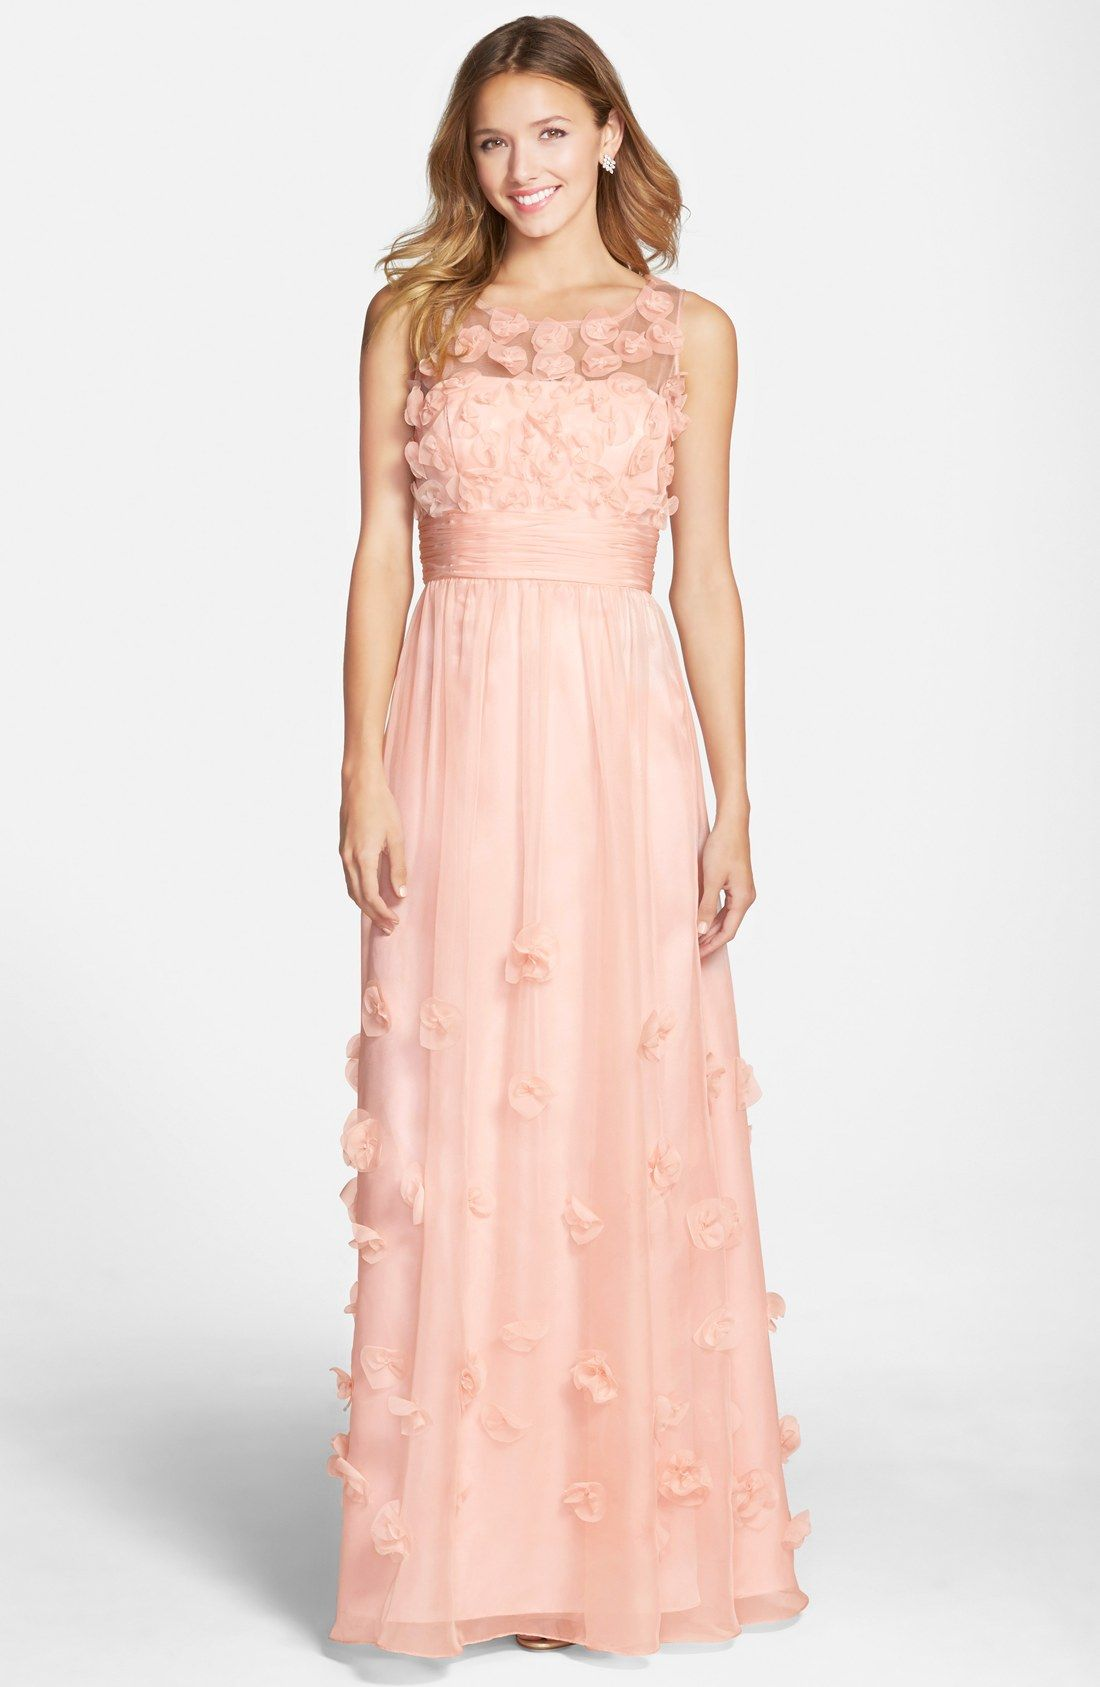 Js collections floral appliqué chiffon gown fashion pinterest